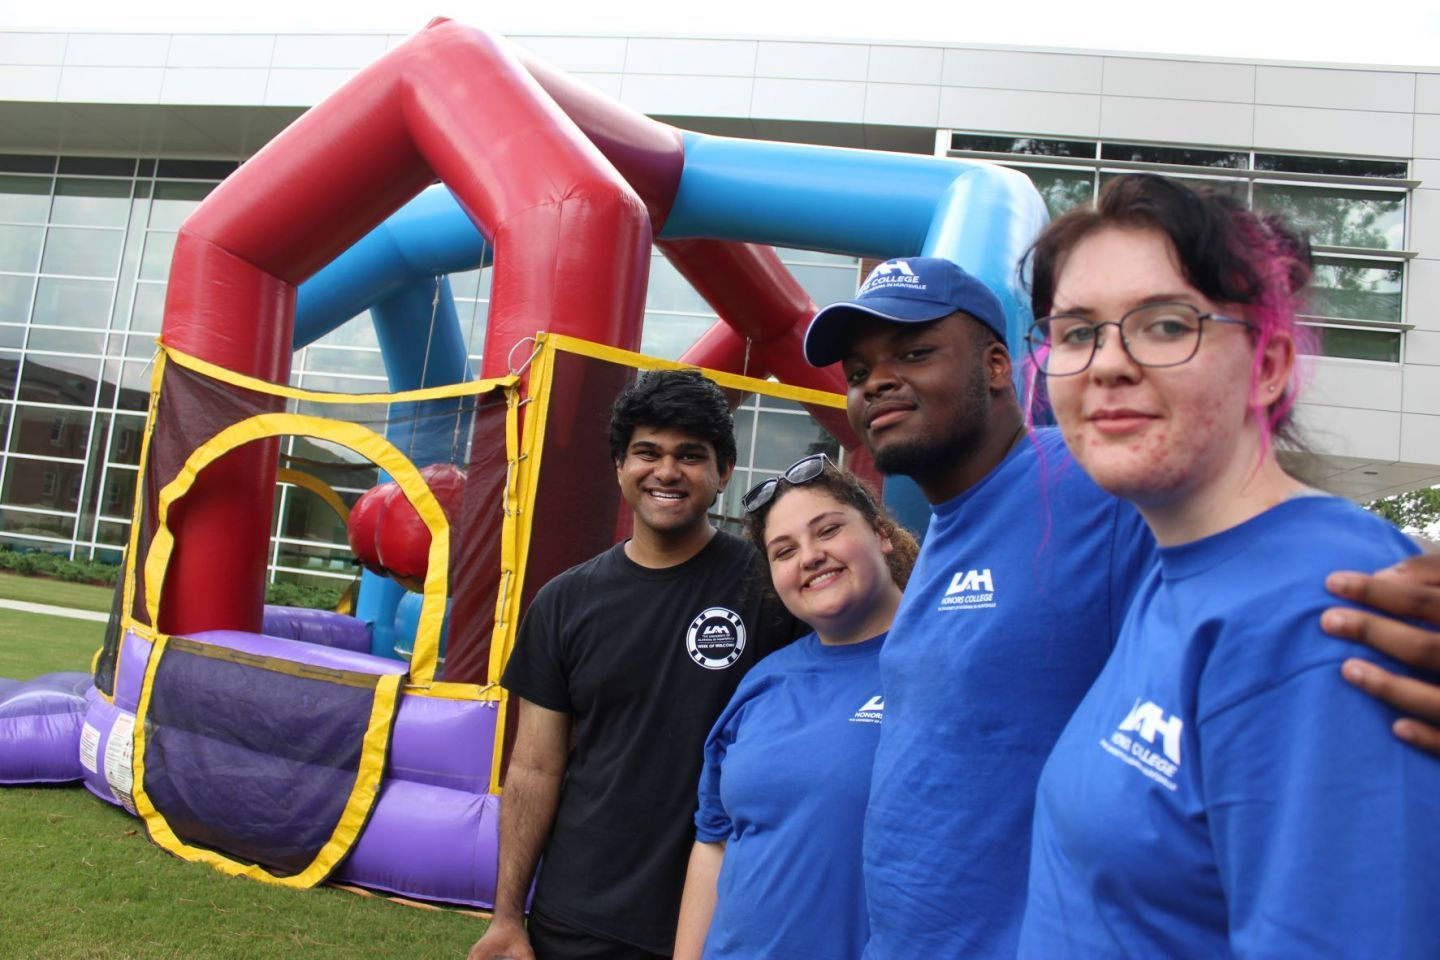 Honors College mentors posing in front of an inflatable bounce house